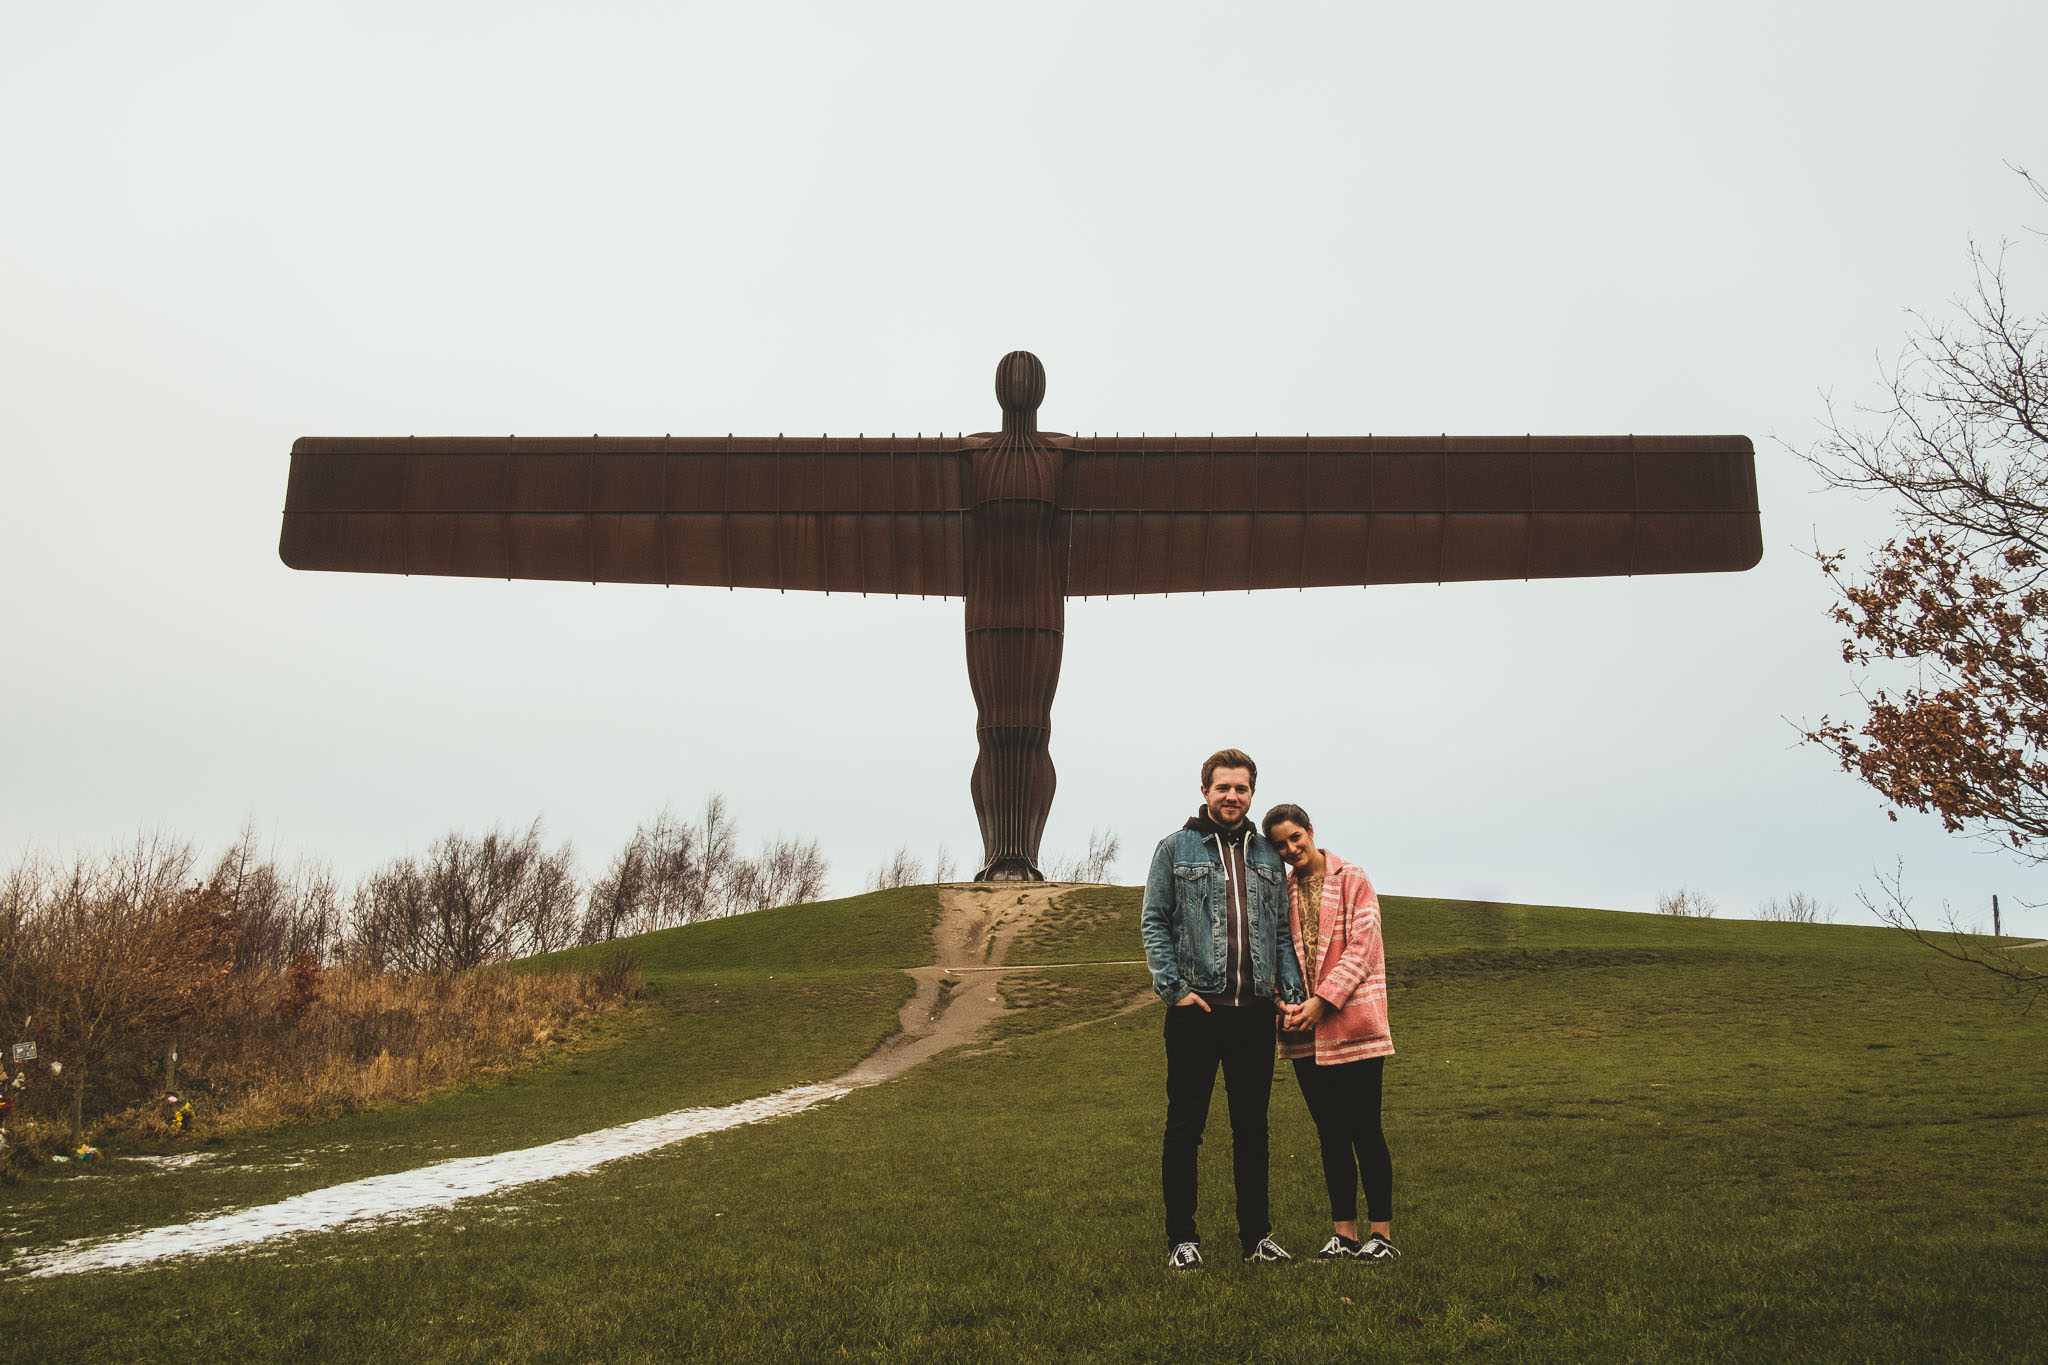 Coulpe cuddle in front of the Angel of the North